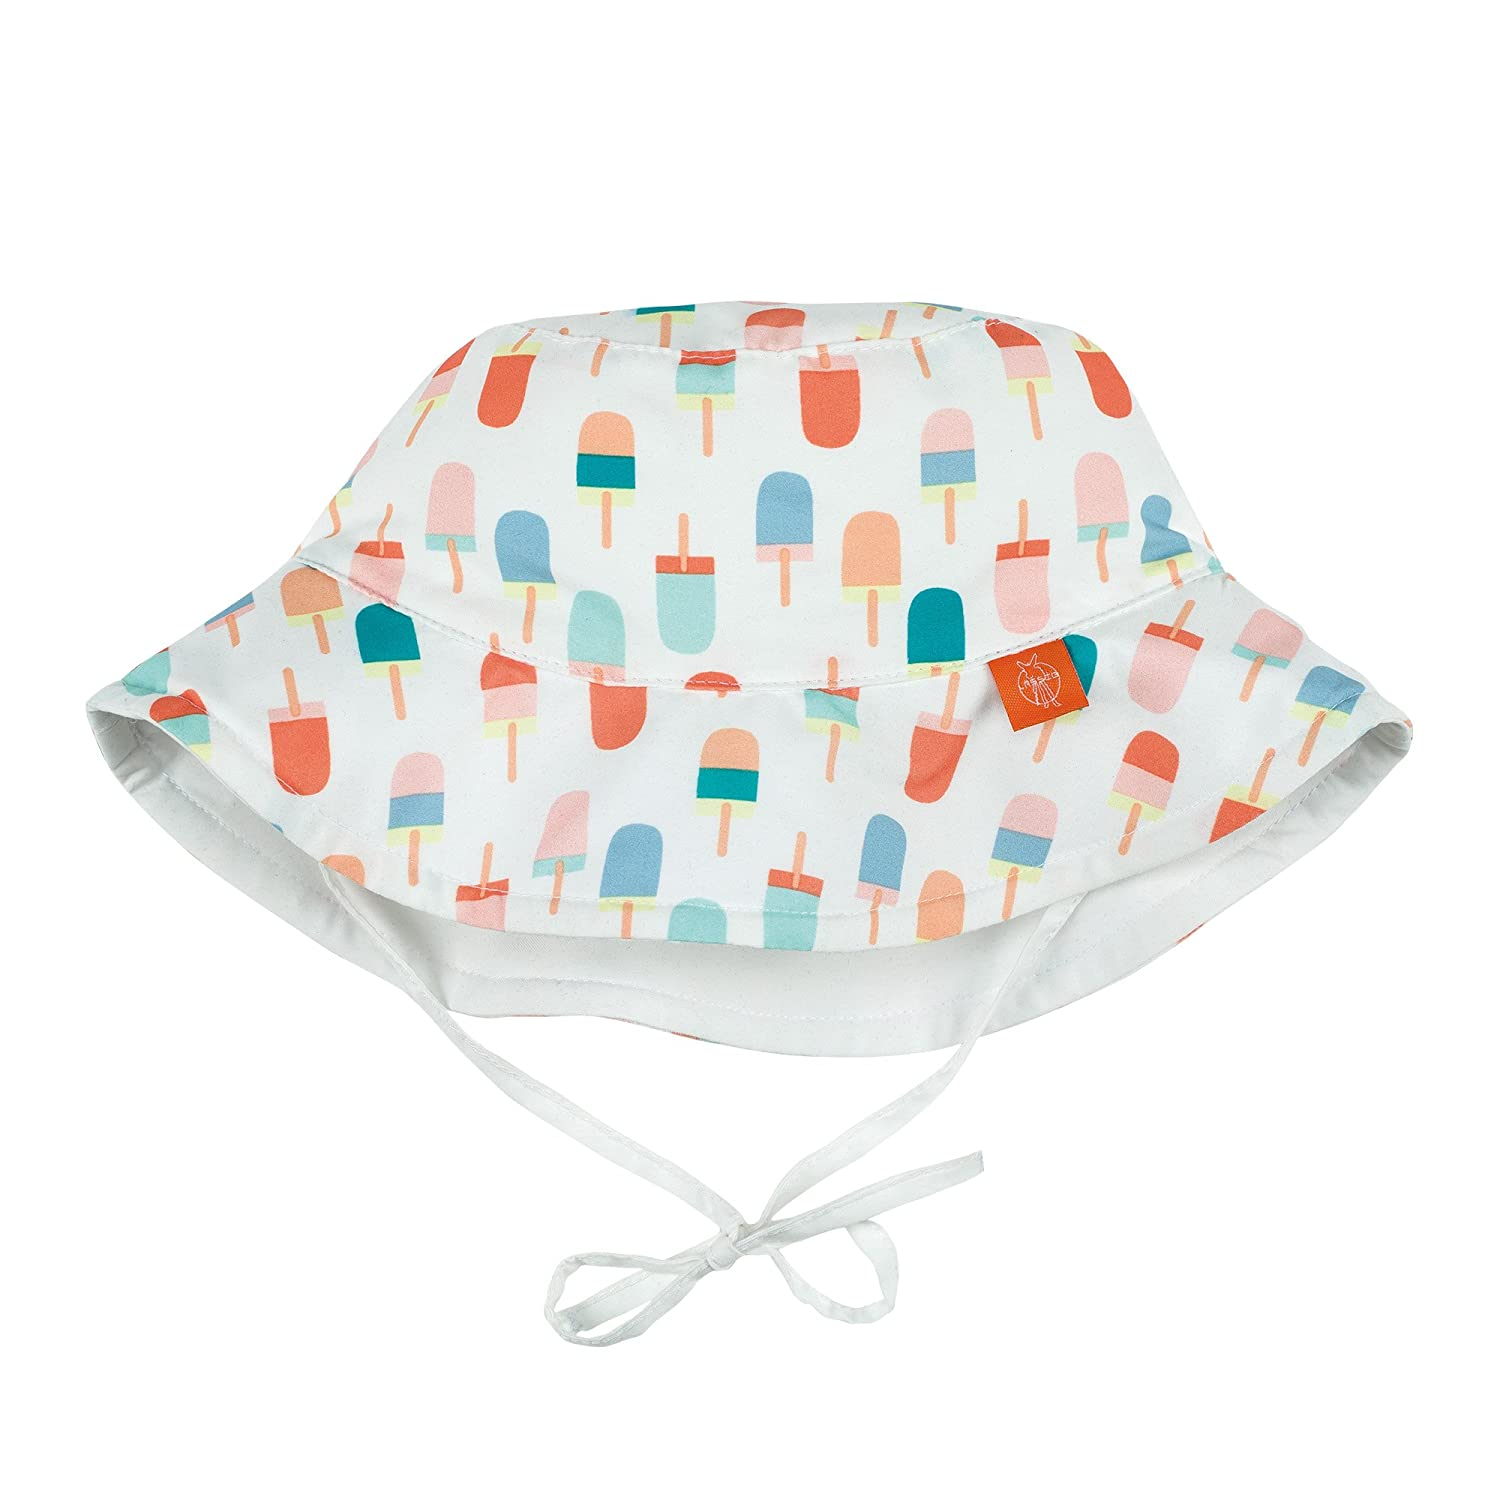 Lässig 1433005106 Baby Sun Protection Bucket Hat Sonnenhut, Ice Cream, Size: Infant 6-18 Monate, mehrfarbig Laessig GmbH 1433005106-18